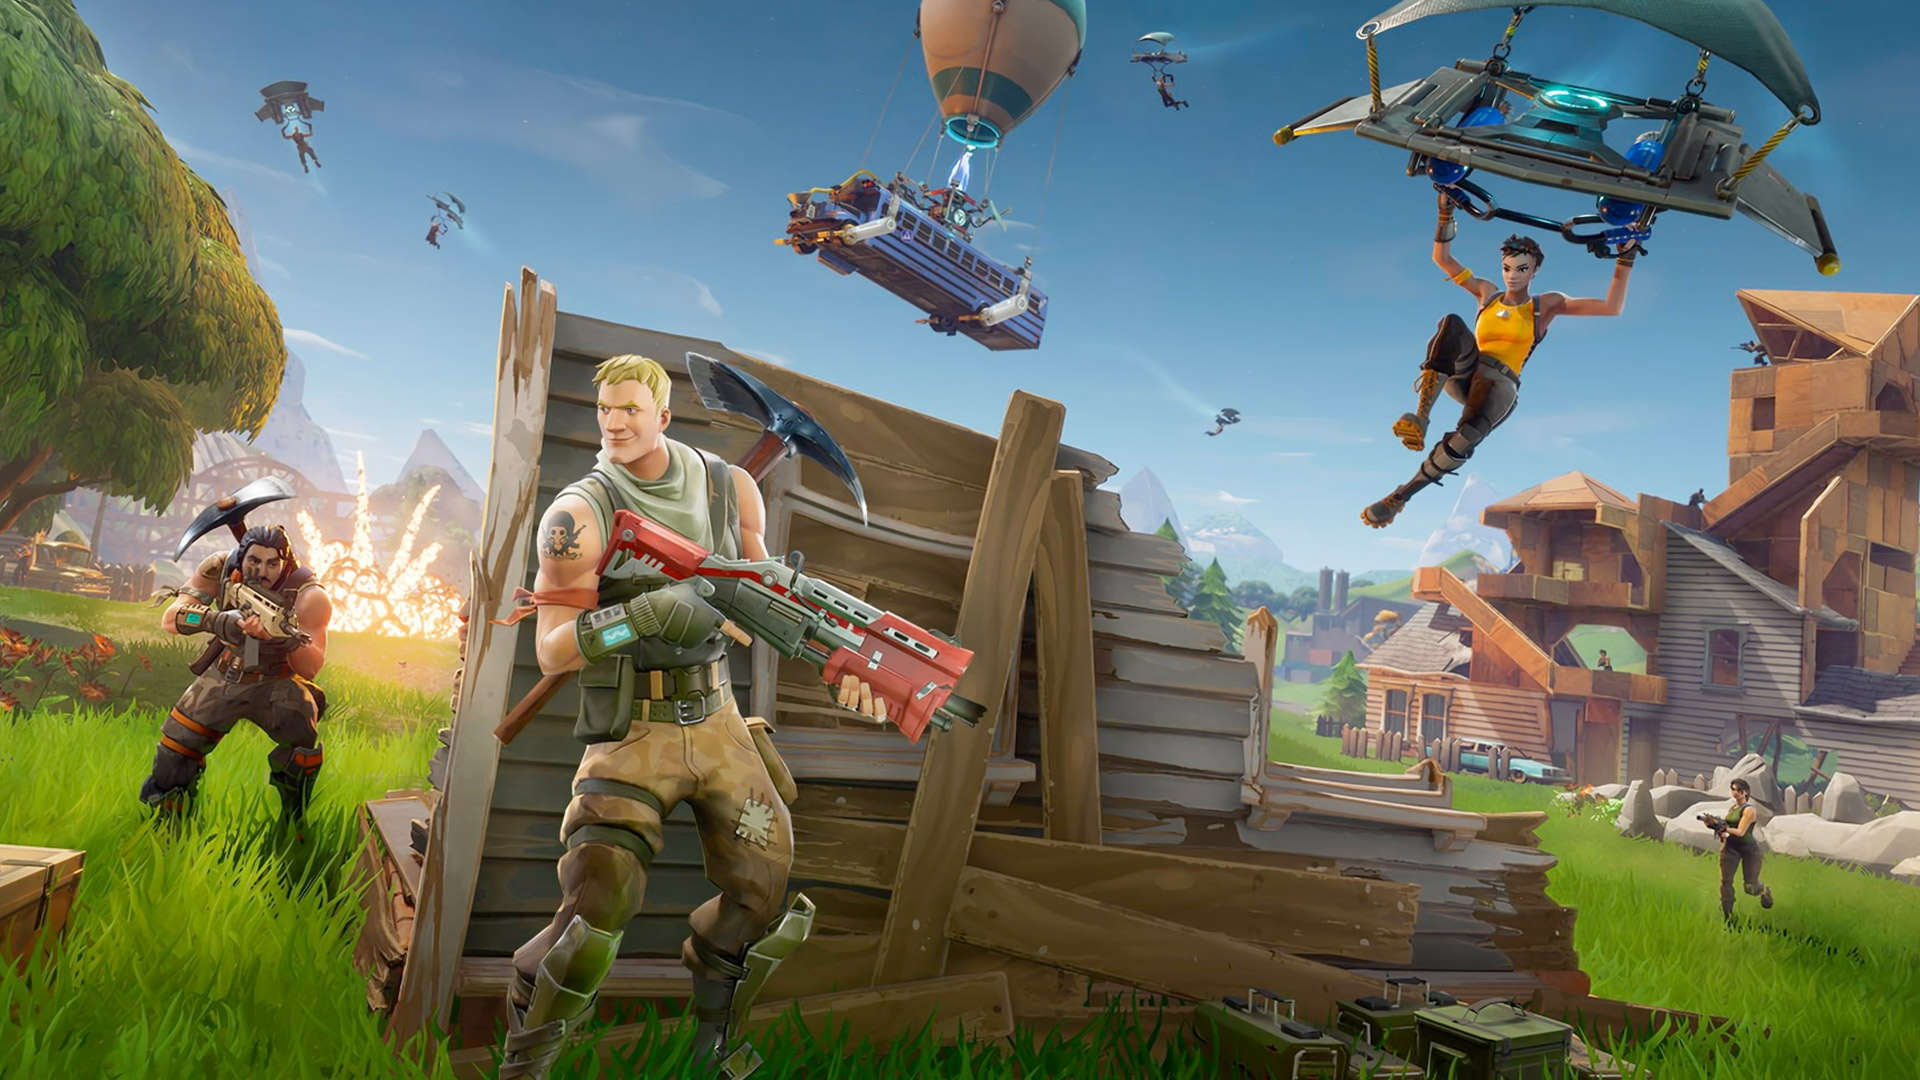 Fortnite On Android Enters Beta This Week